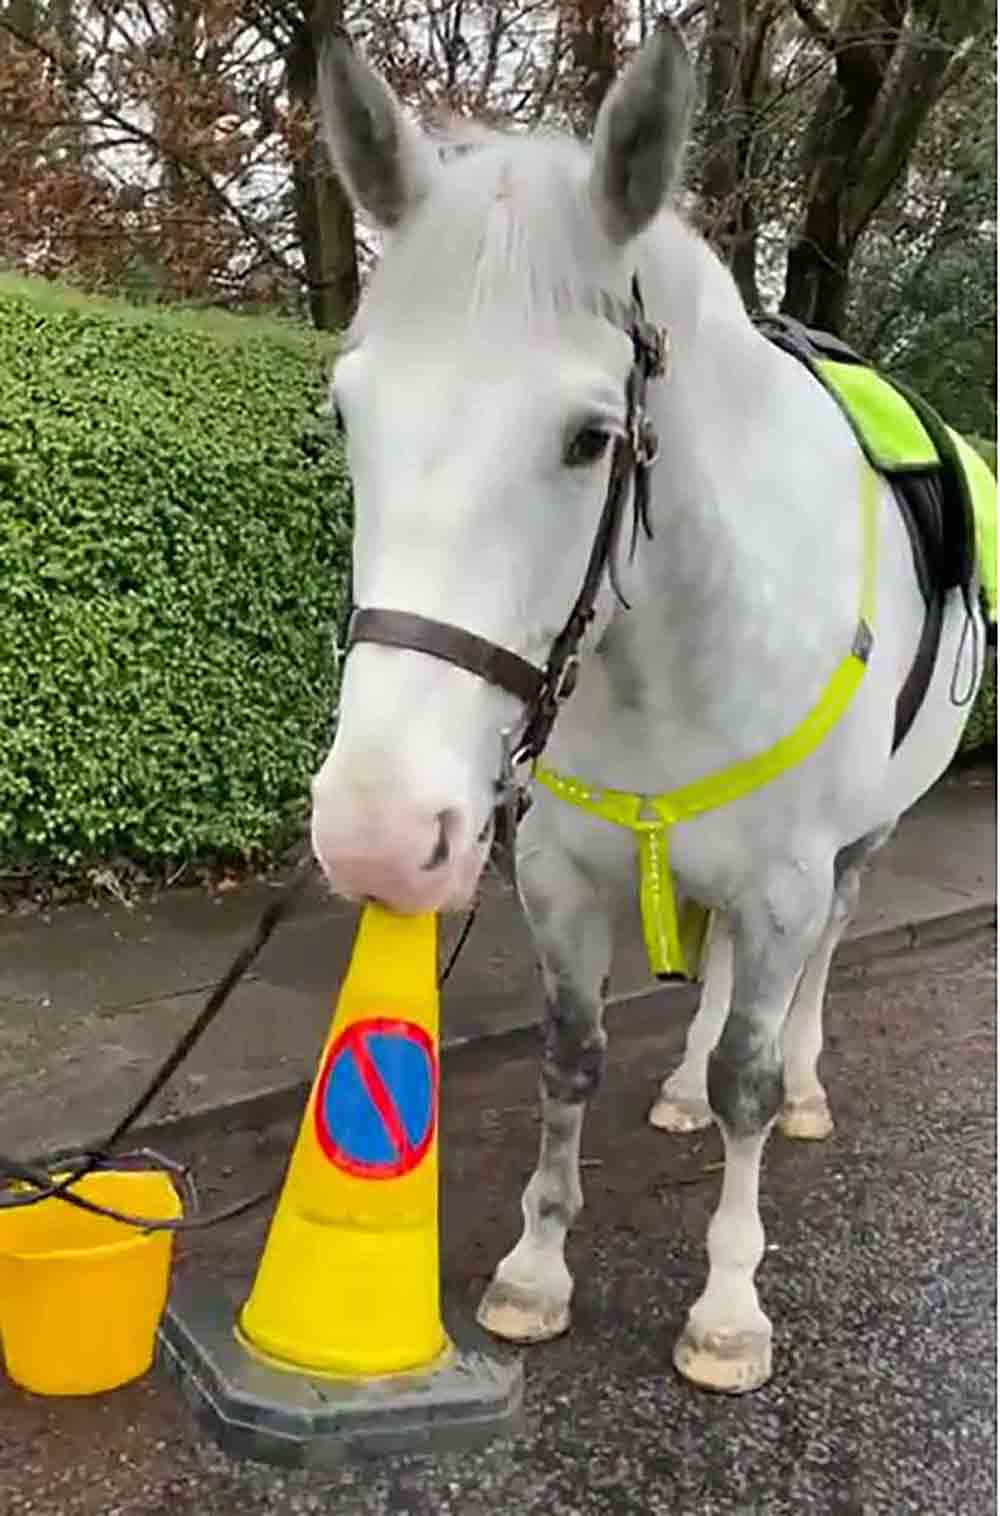 Barnaby the horse refuses to give up traffic cone - Viral Video News UK